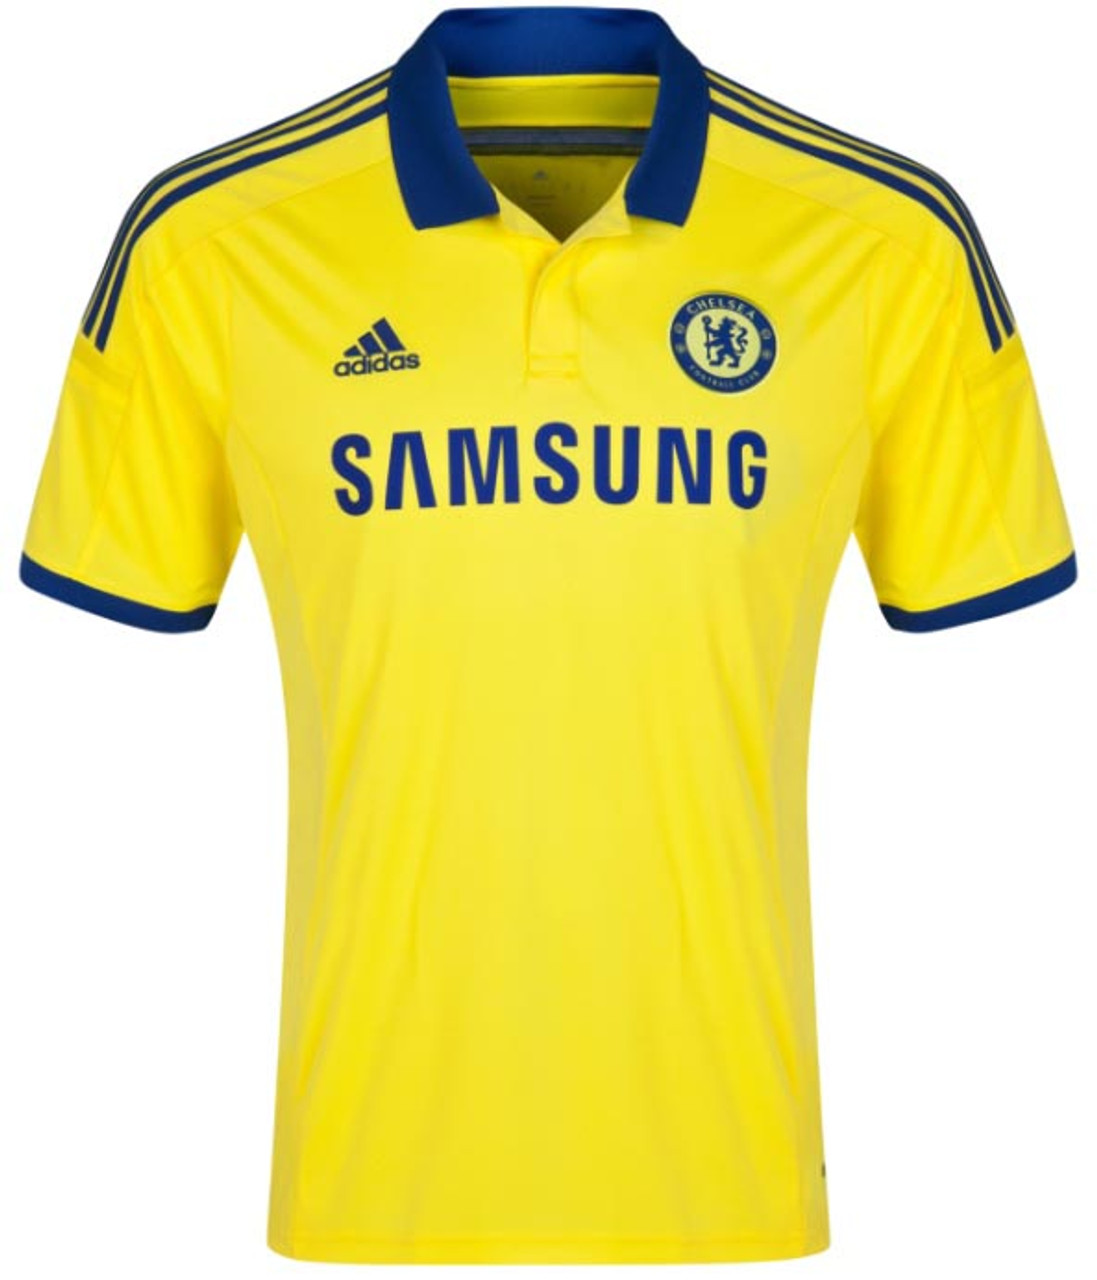 ADIDAS CHELSEA 2015 AWAY JERSEY YELLOW